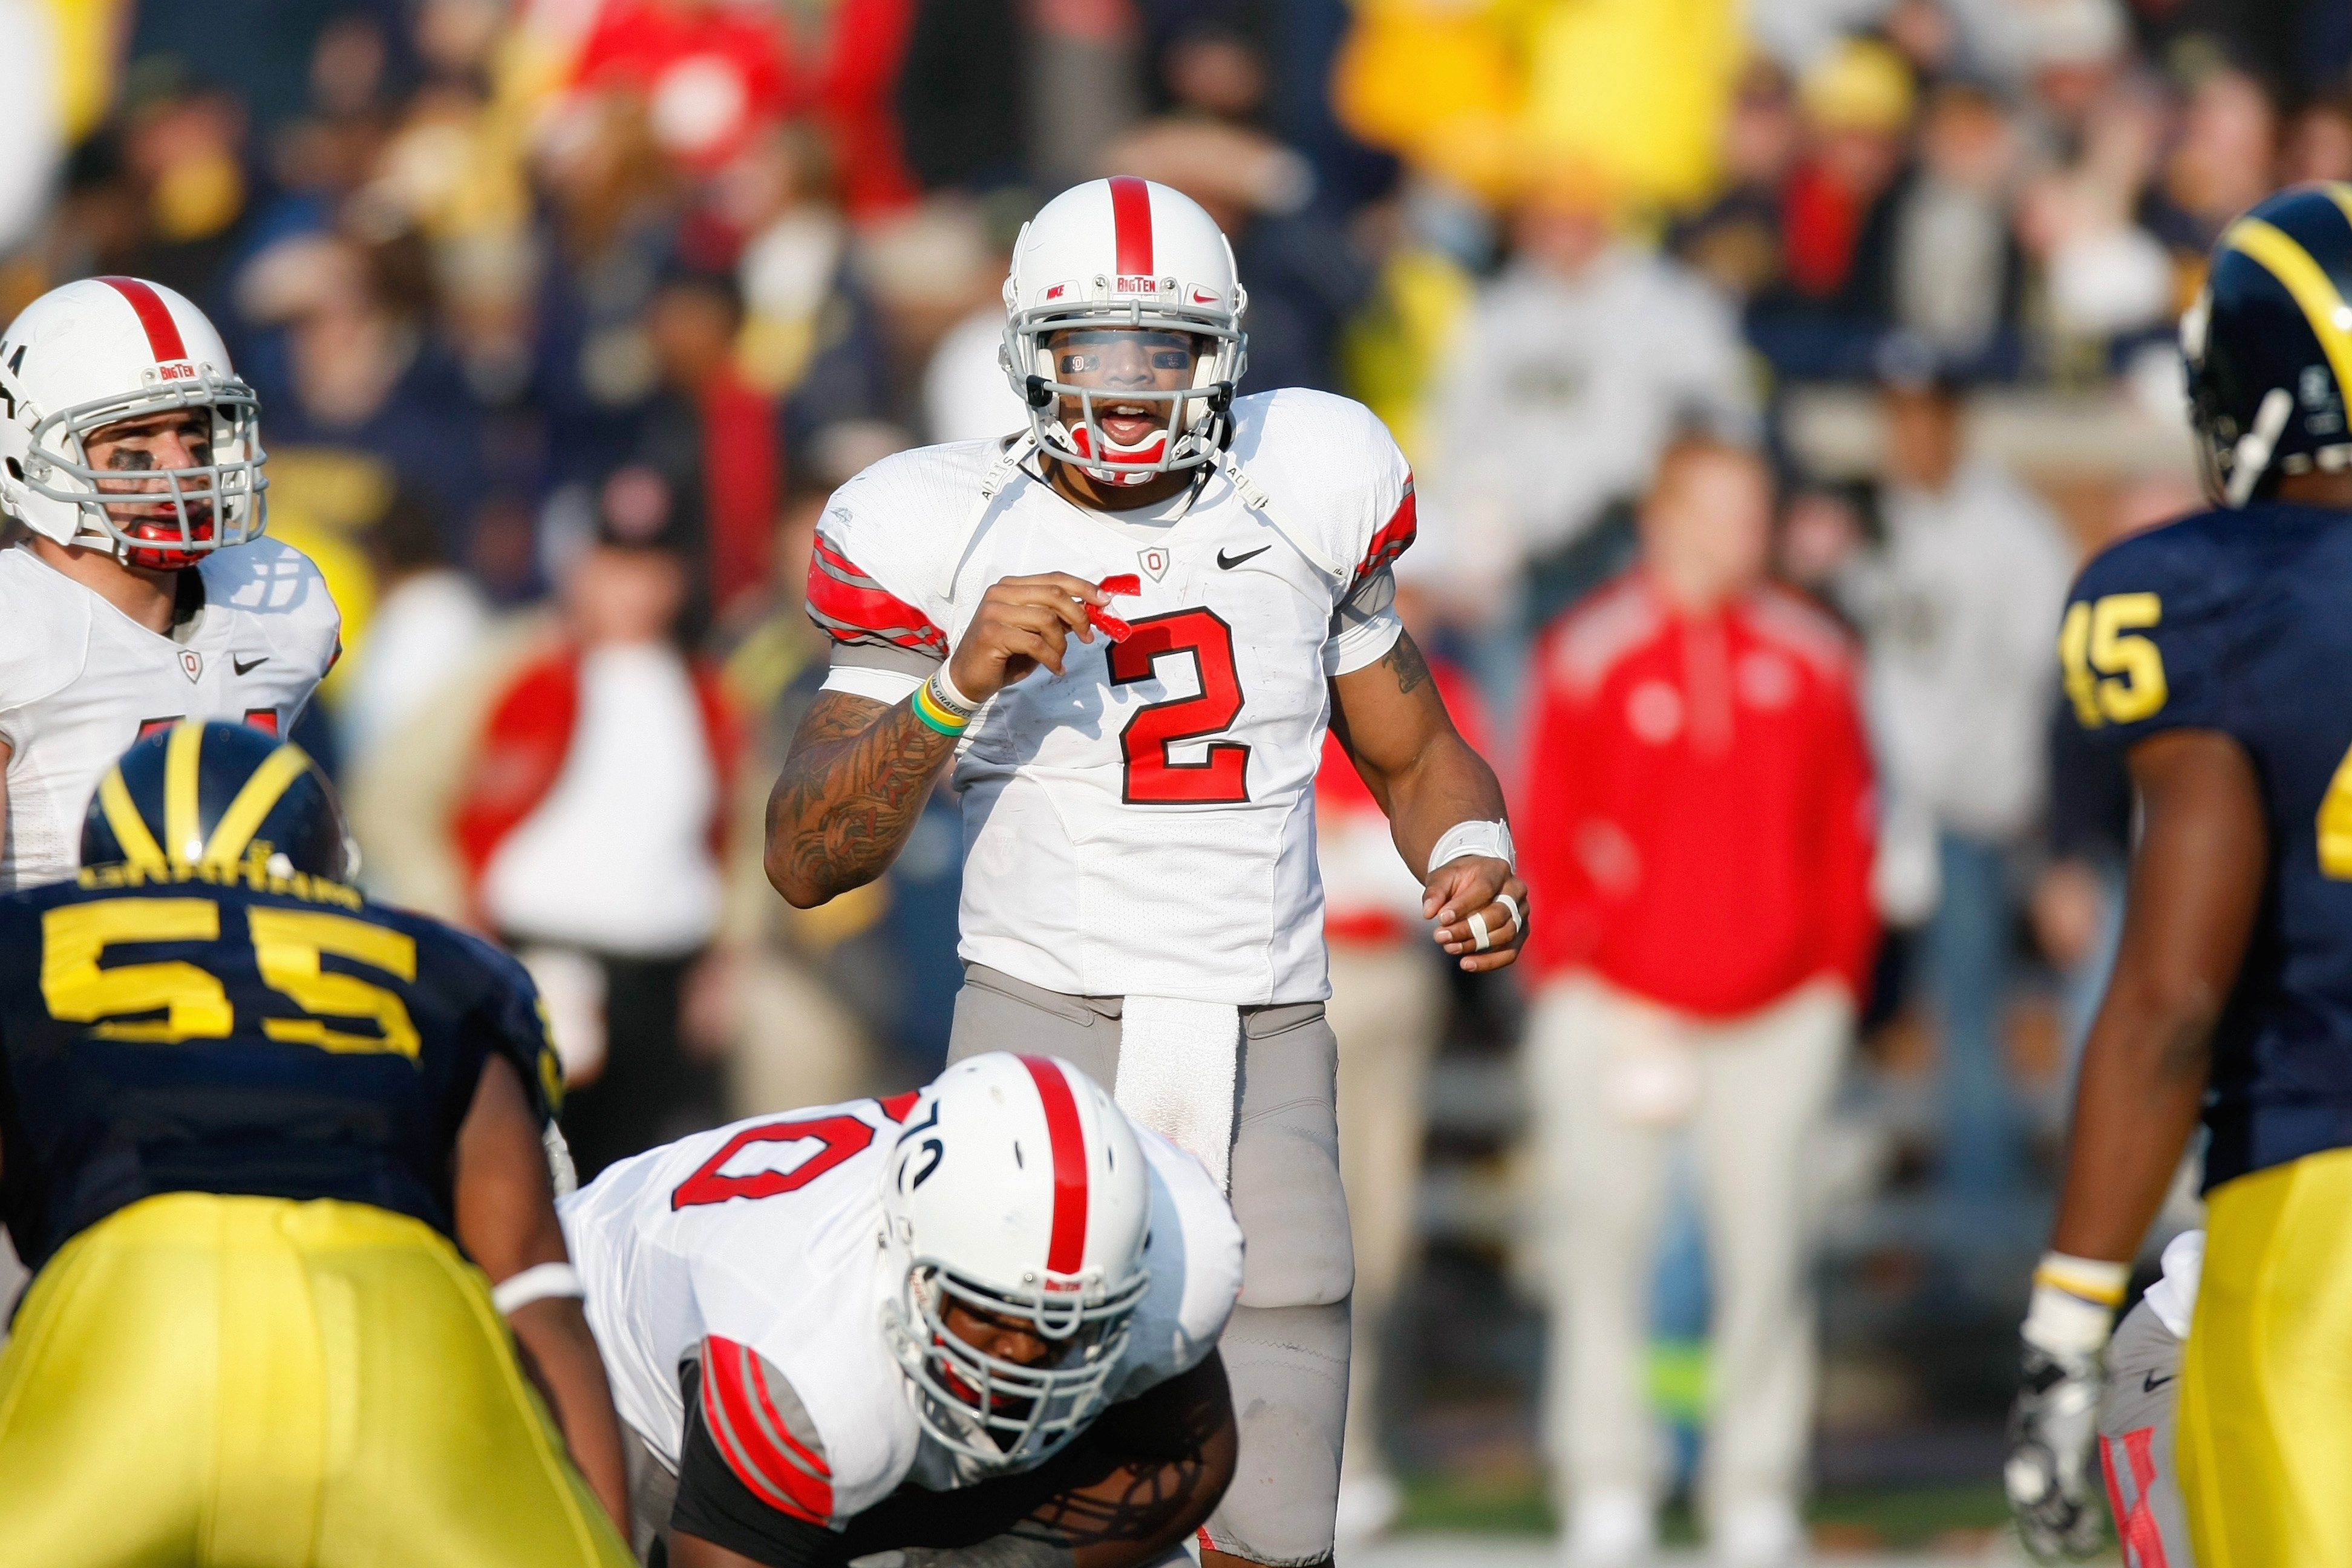 ANN ARBOR, MI - NOVEMBER 21: Quarterback Terrelle Pryor #2 of the Ohio State Buckeyes gets ready at the line of scrimmage during the game against the Michigan Wolverines on November 21, 2009 at Michigan Stadium in Ann Arbor, Michigan. Ohio State won the g